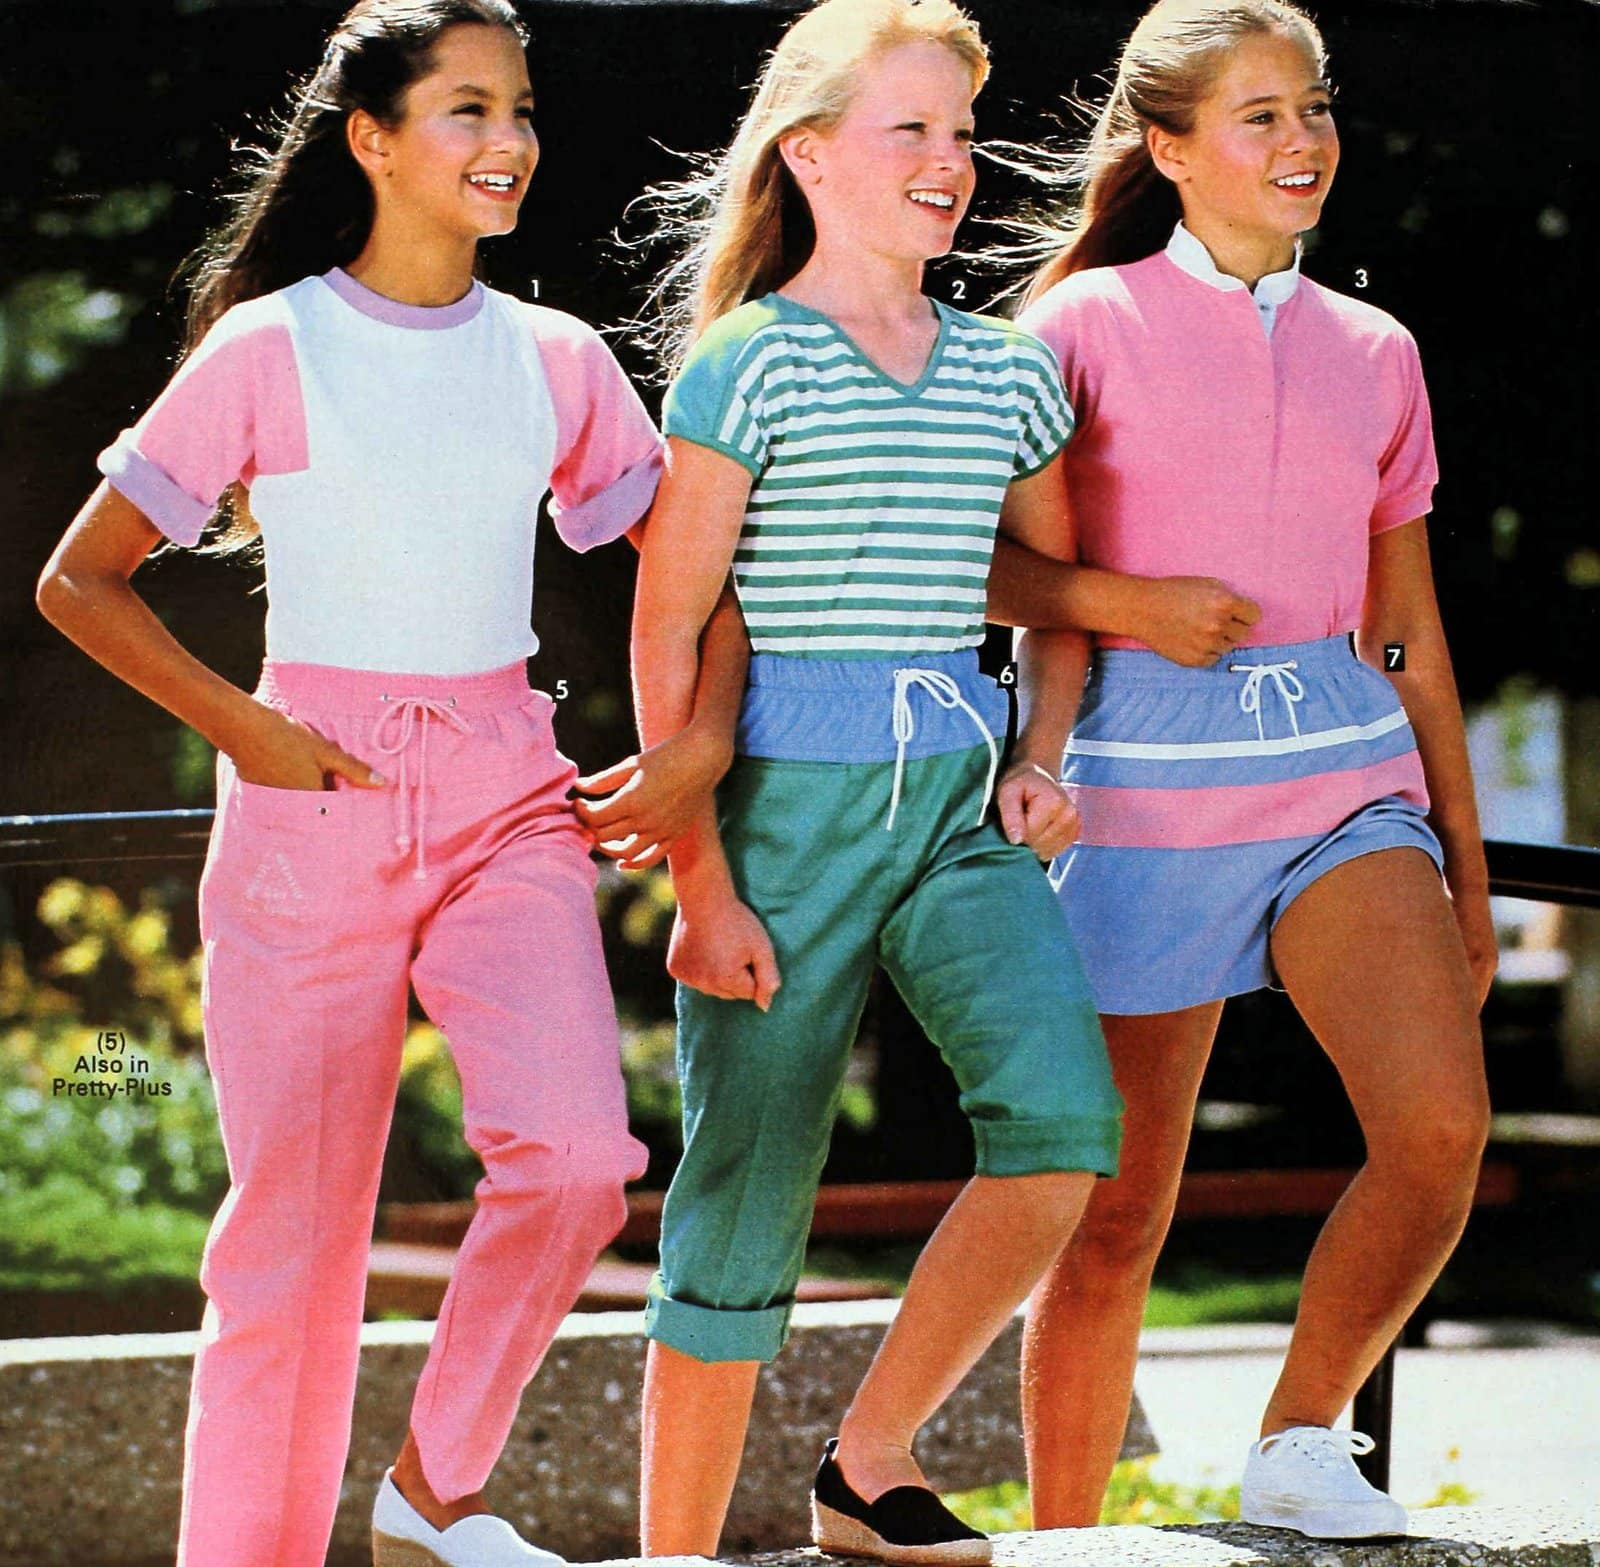 Fashionable activewear for girls (1983)